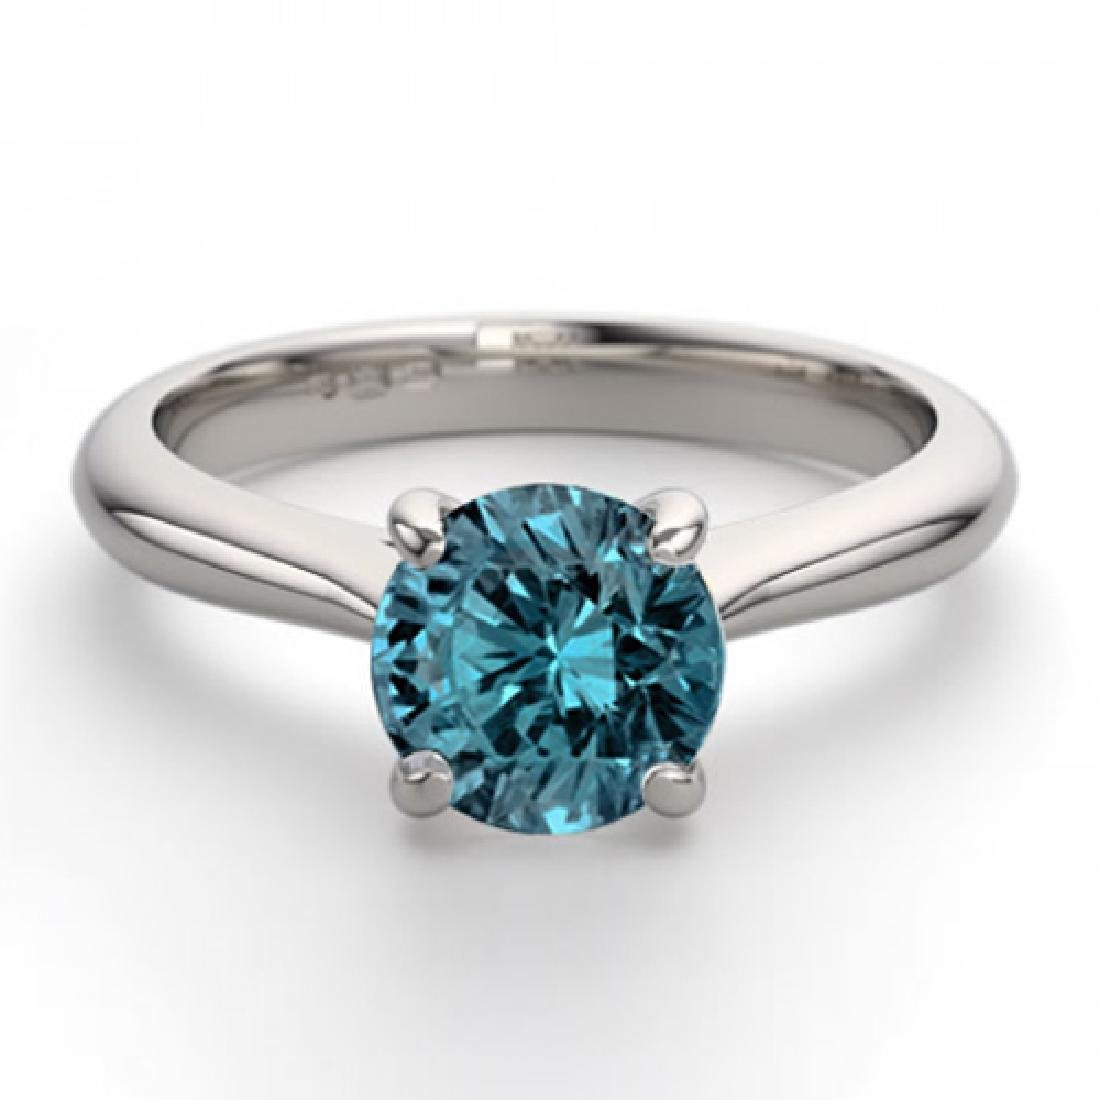 14K White Gold 1.02 ctw Blue Diamond Solitaire Ring -